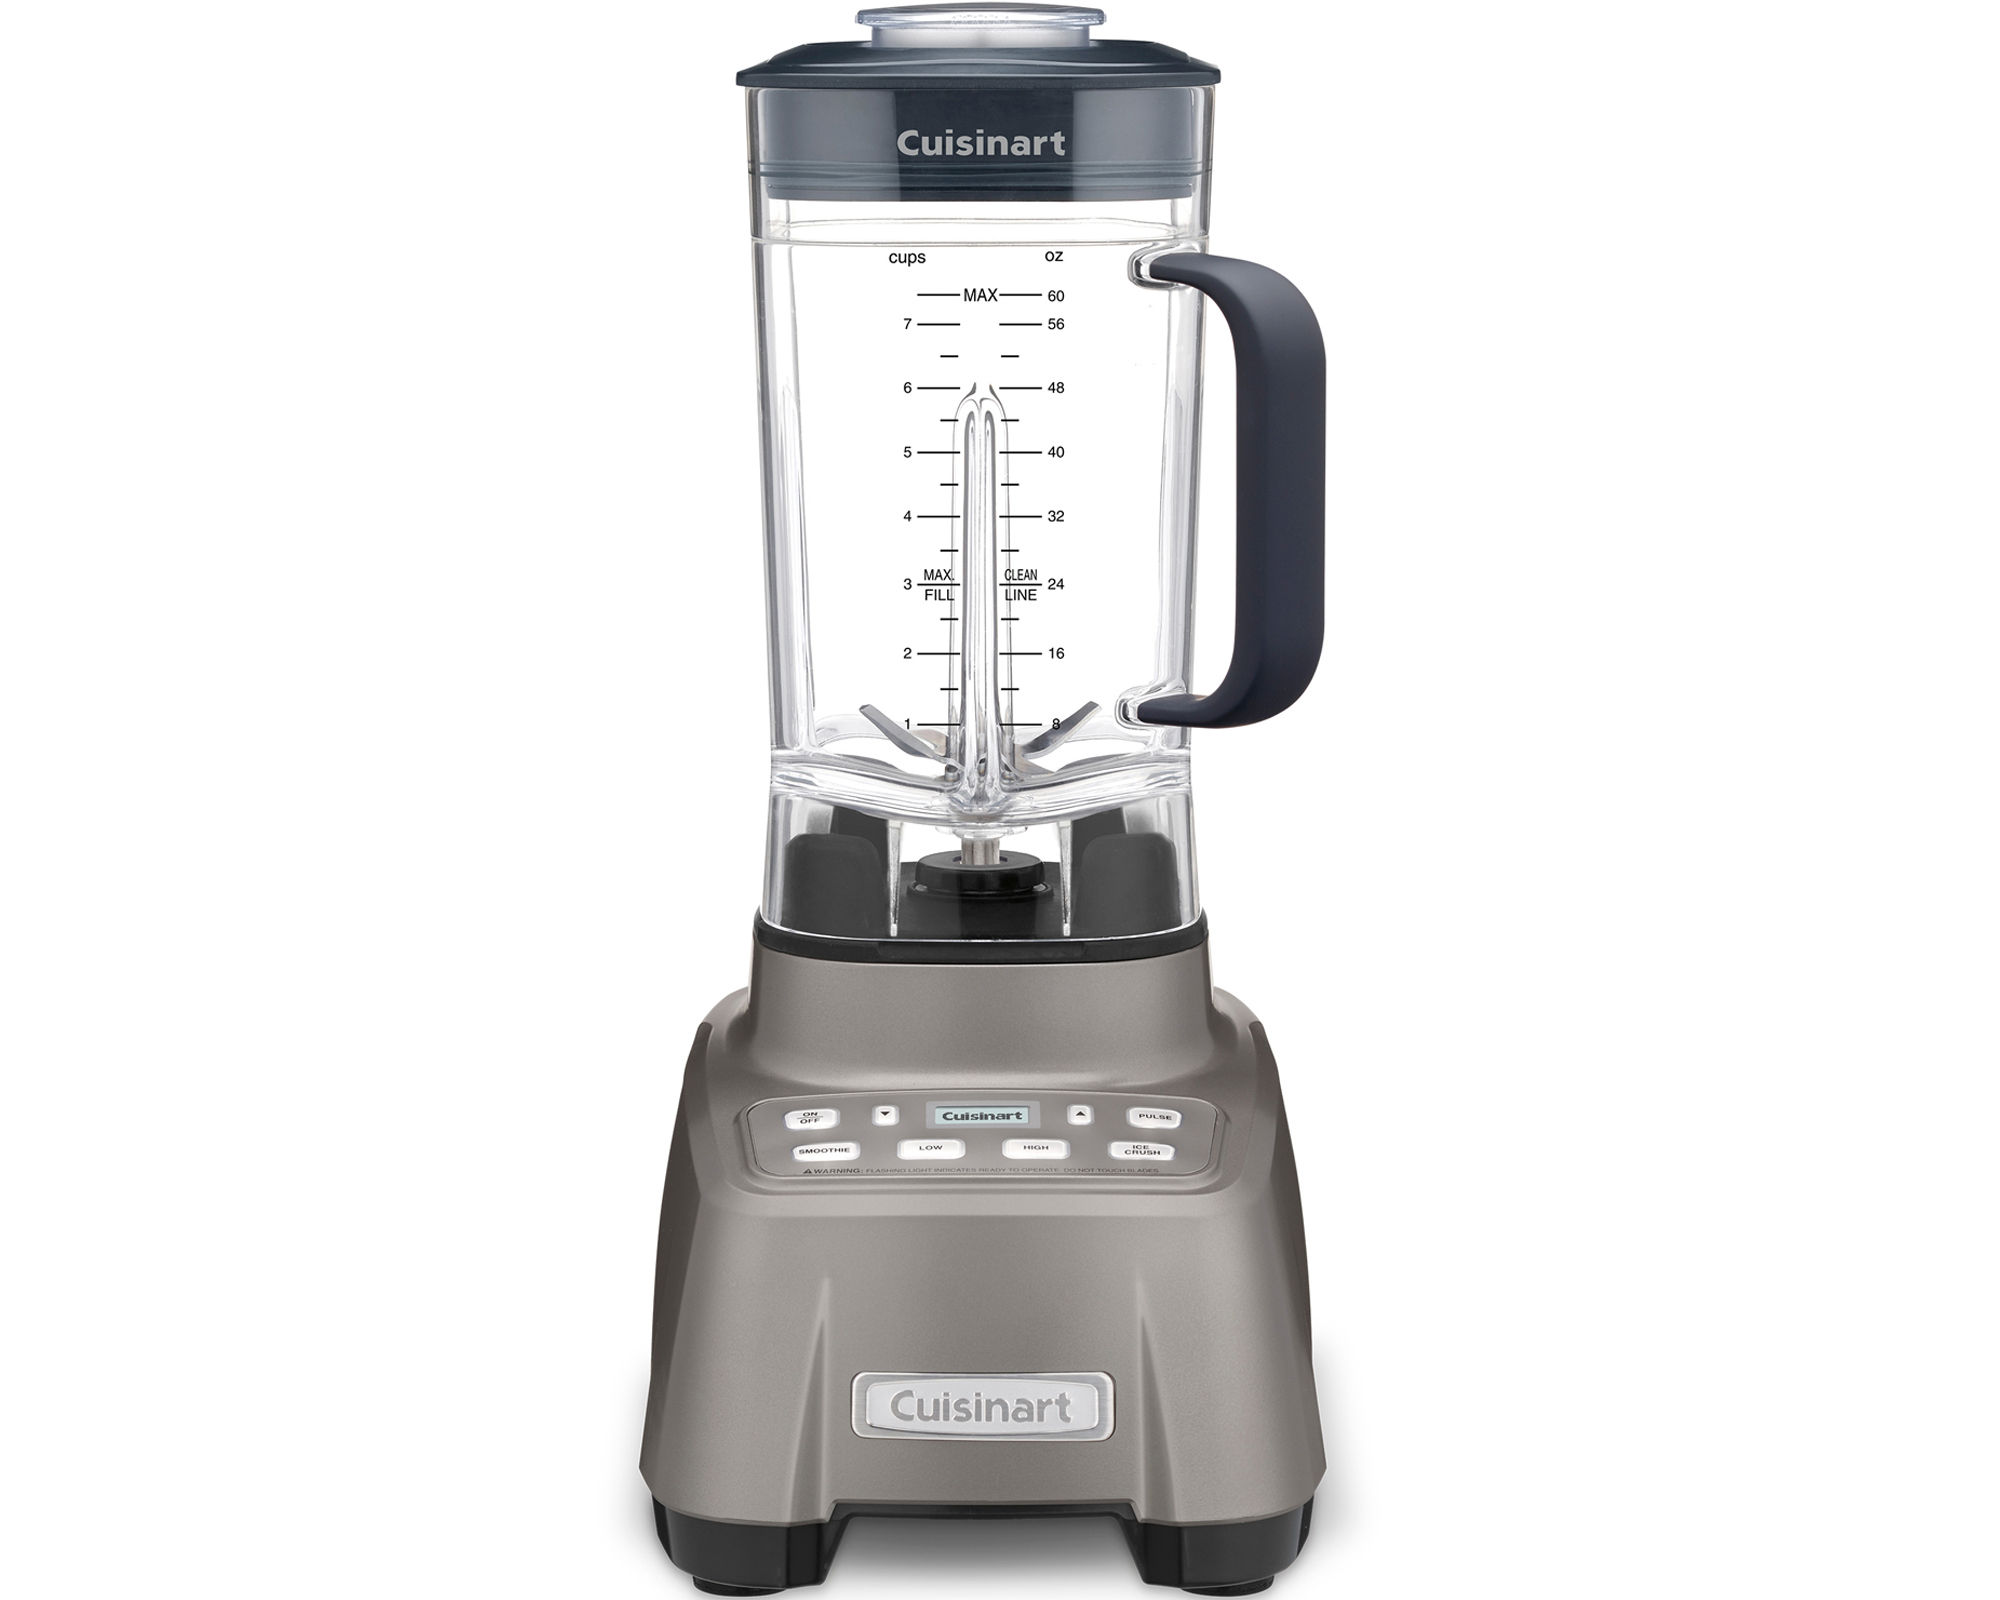 Cuisinart 2.25 Horse Power Blender